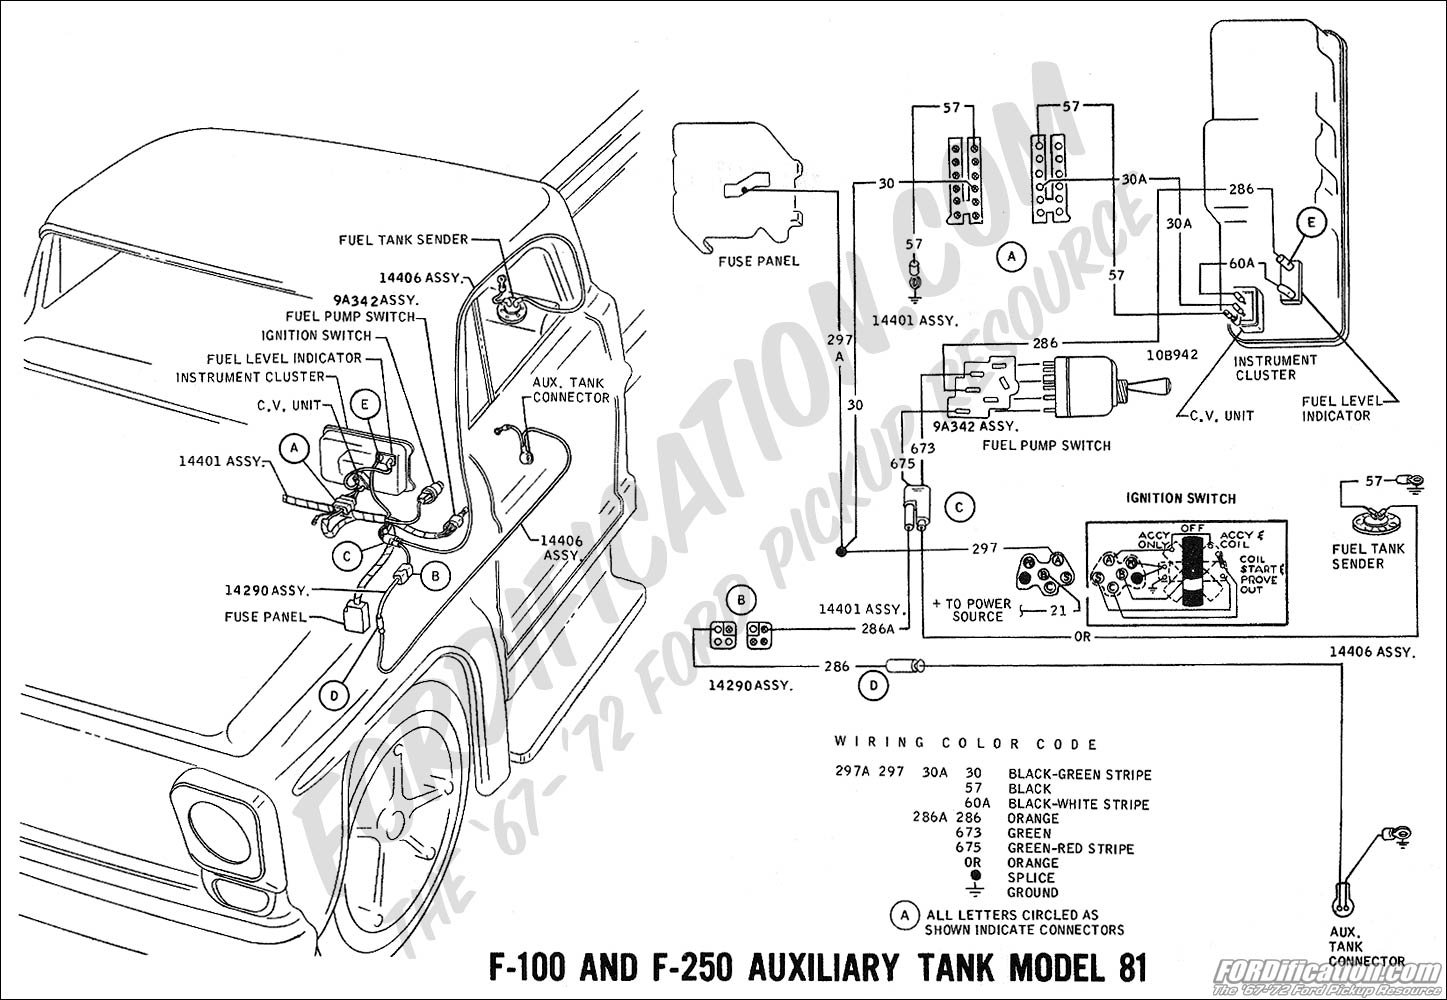 hight resolution of 1972 f350 fuse box diagram wiring diagram portal 2013 ford explorer fuse diagram 1972 ford fuse box